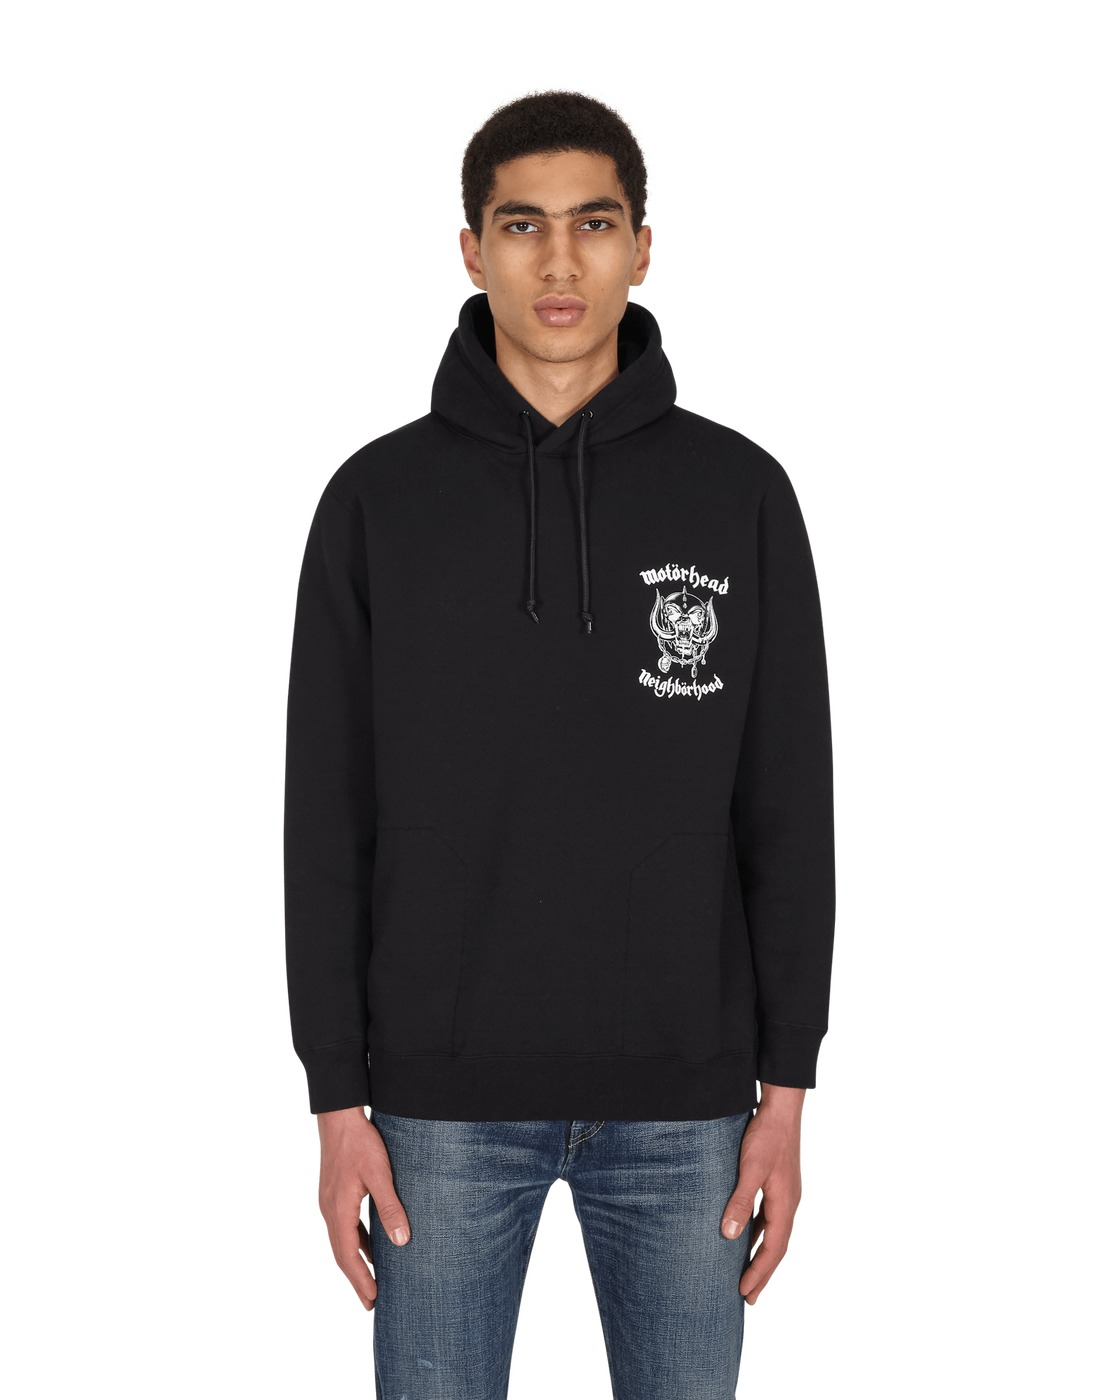 Photo: Neighborhood Motörhead Hooded Sweatshirt Black